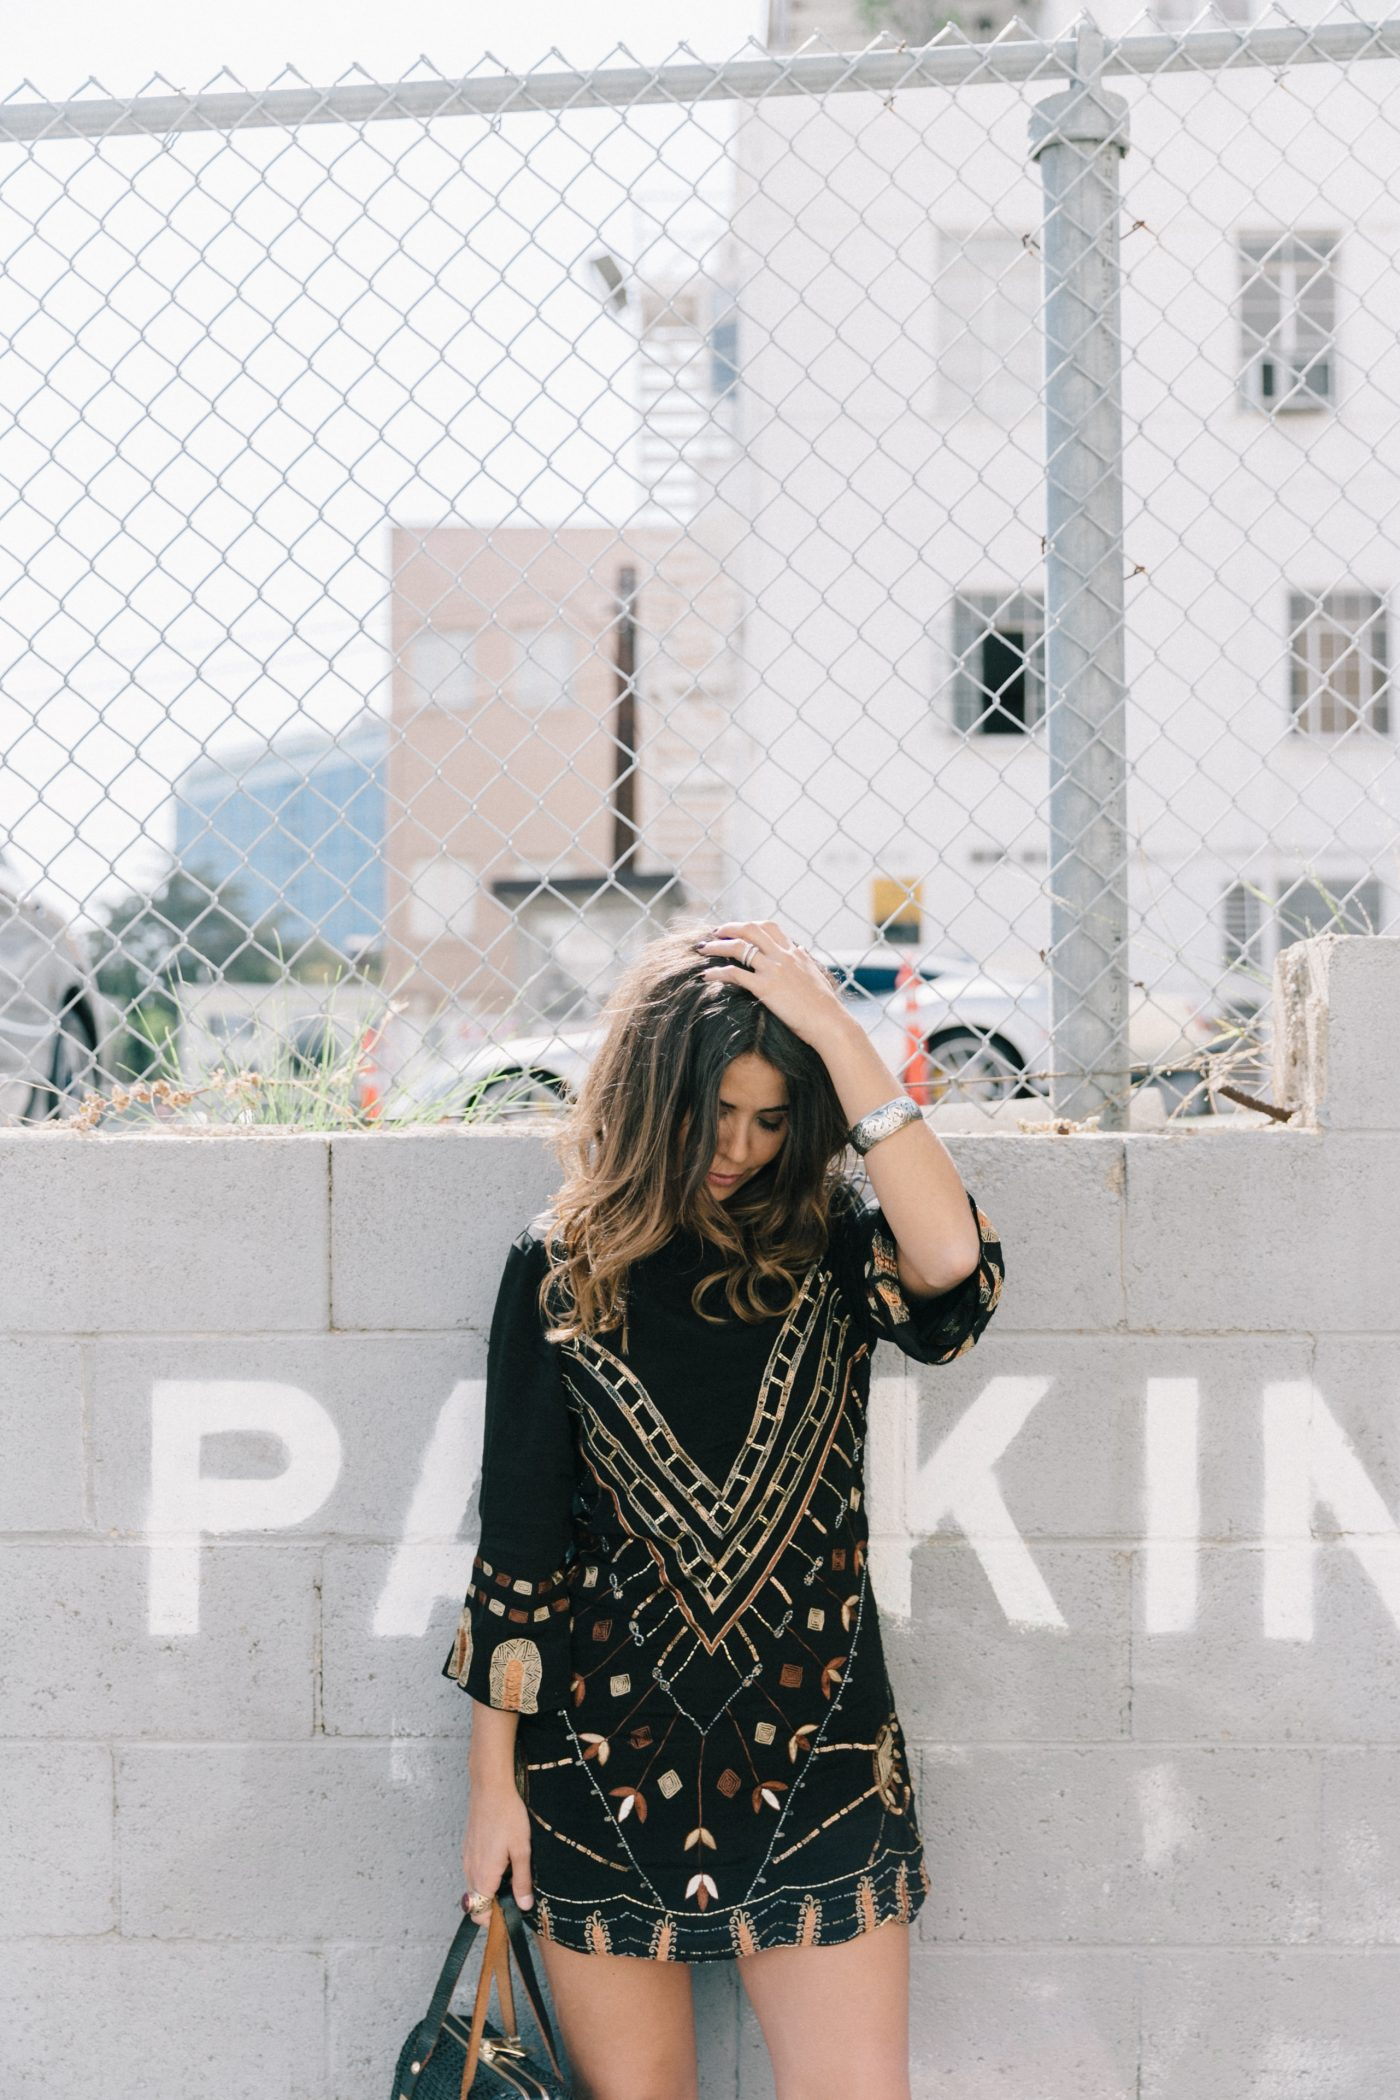 Boho_Dress-Jens_Pirate_Booty-Black_Beaded_Dress-Lace_Up_Sandals-Los_Angeles-Outfit-Collage_Vintage-65